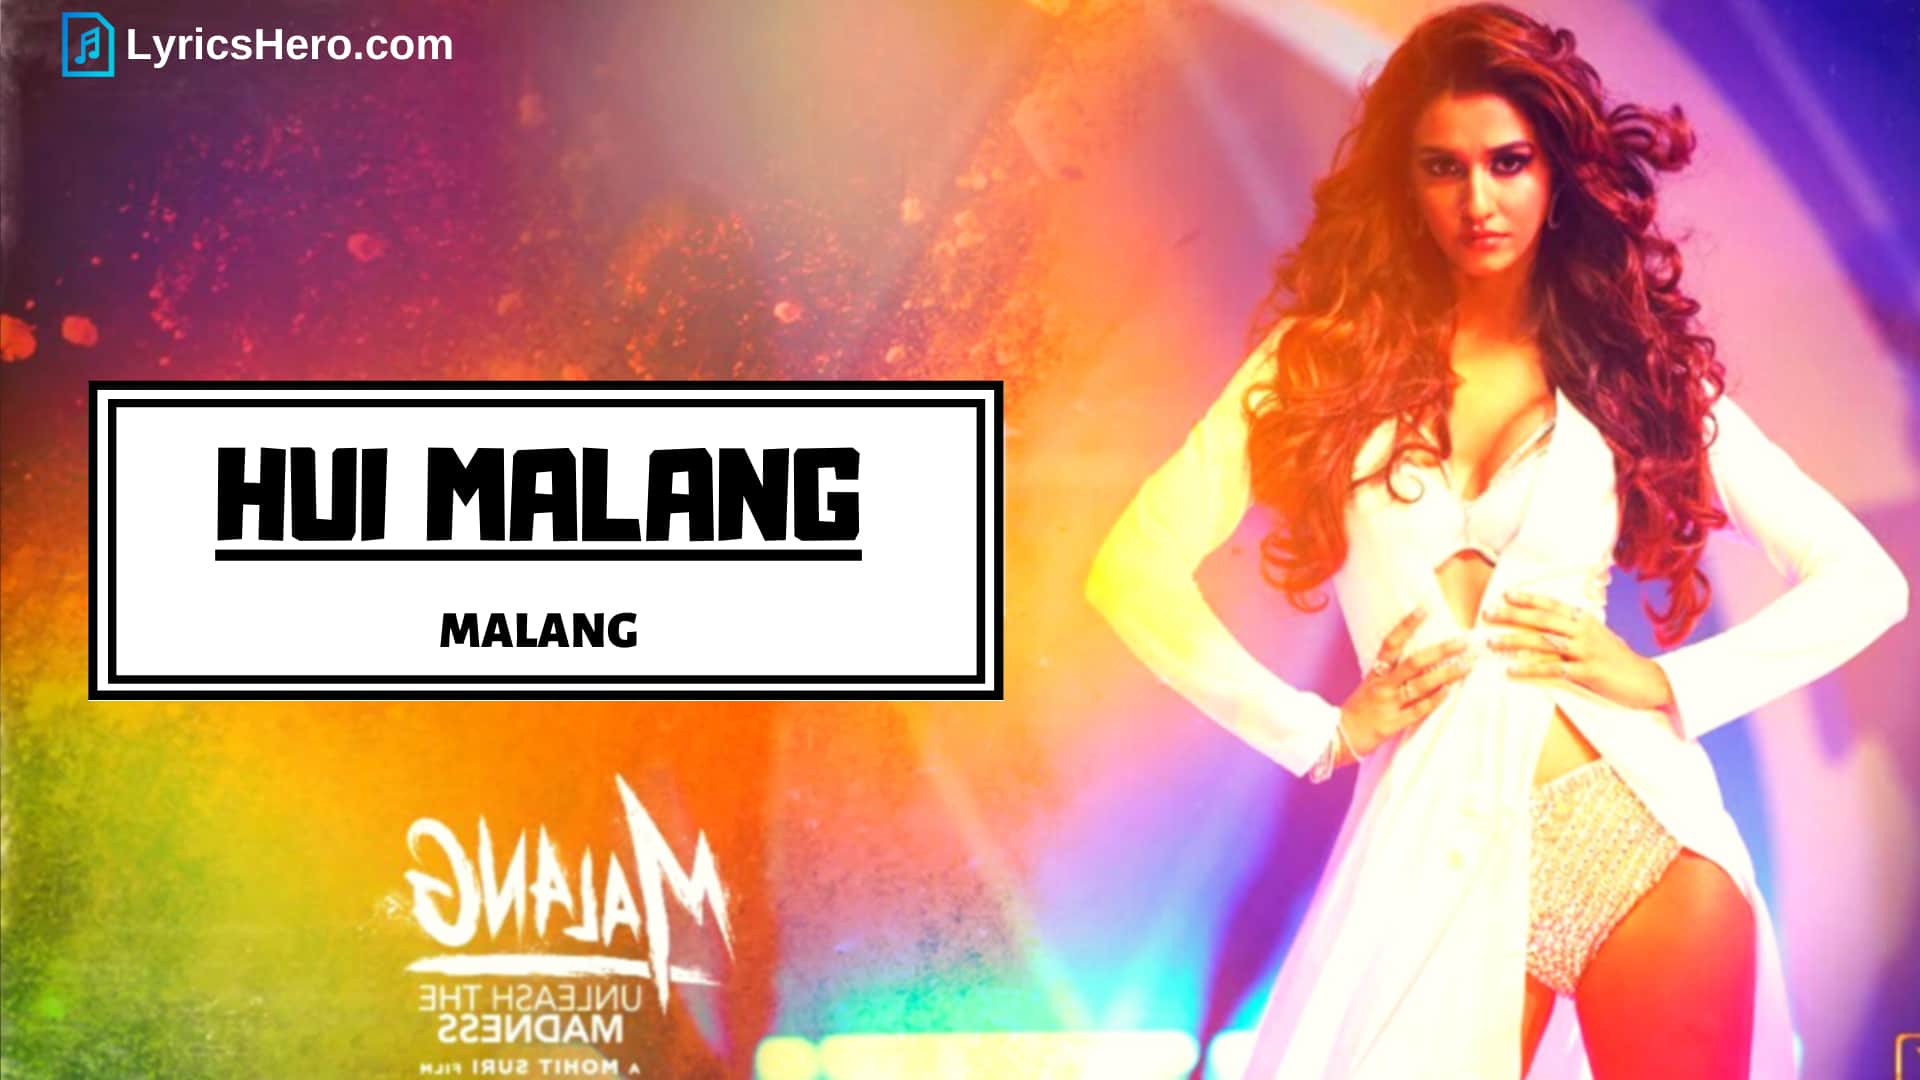 Hui Malang Lyrics, Hui Malang Song lyrics, Hui Malang Lyrics Malang, Hui Malang Lyrics in Hindi, Hui Malang Lyrics Asees Kaur